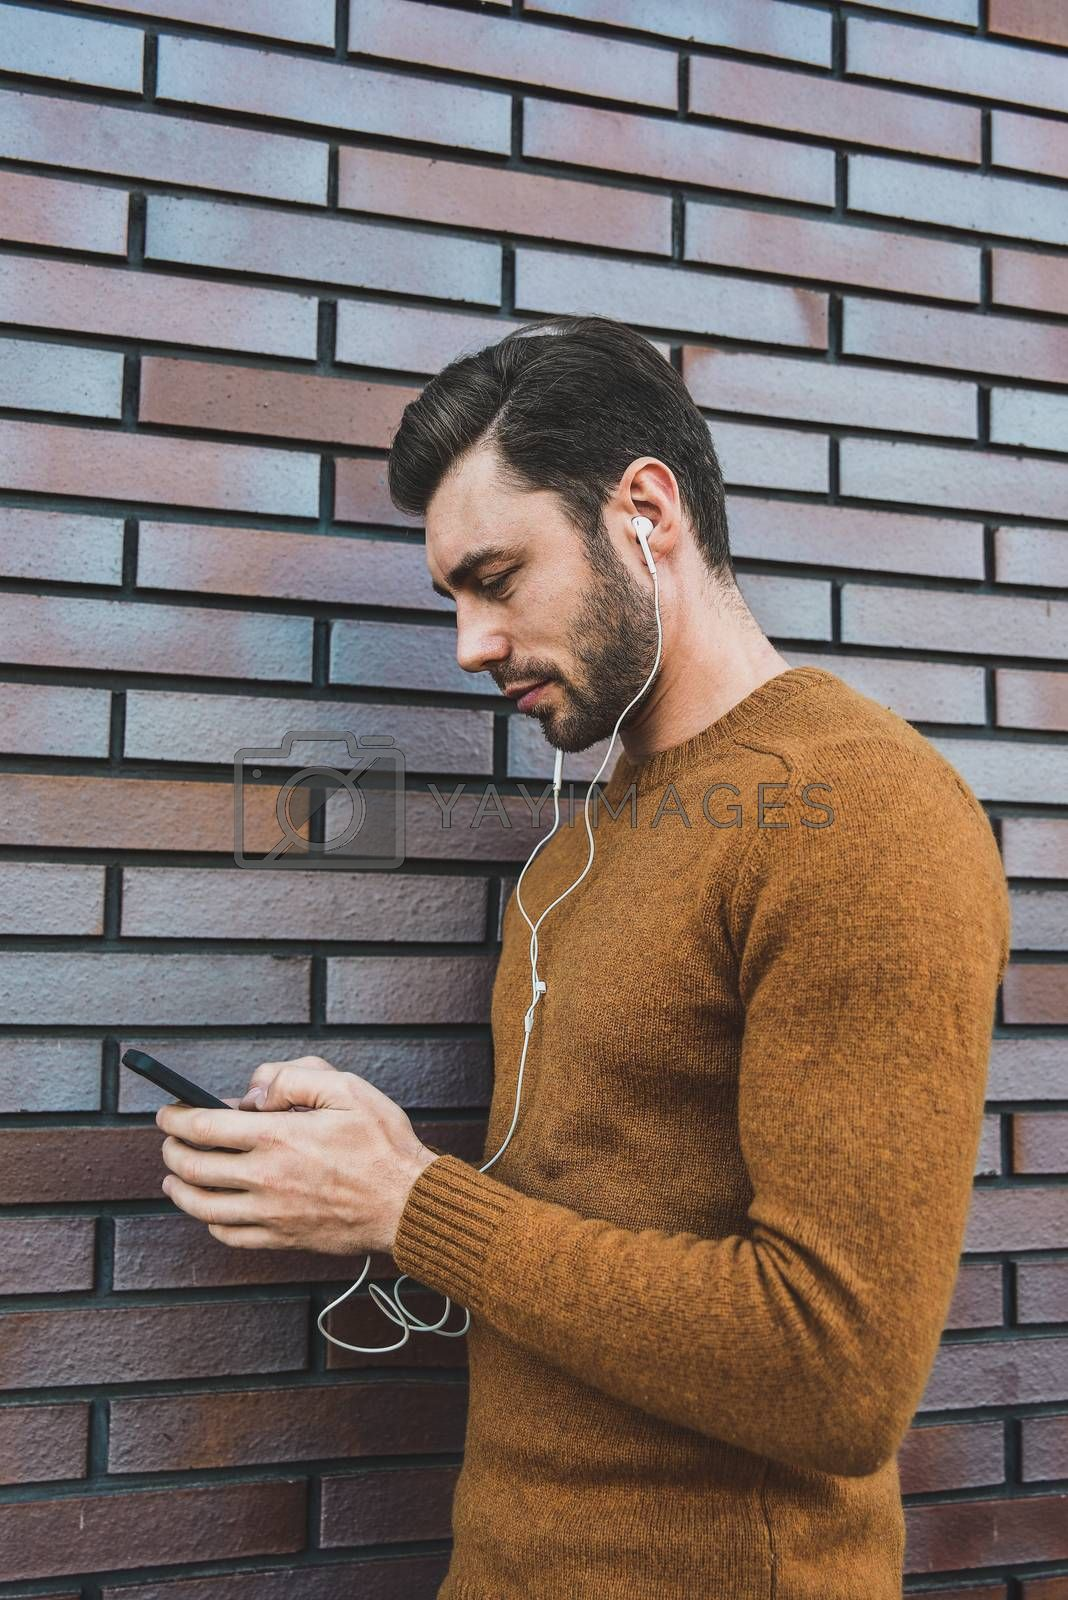 Smiling man listening to music on headphones and leaning against brick wall.